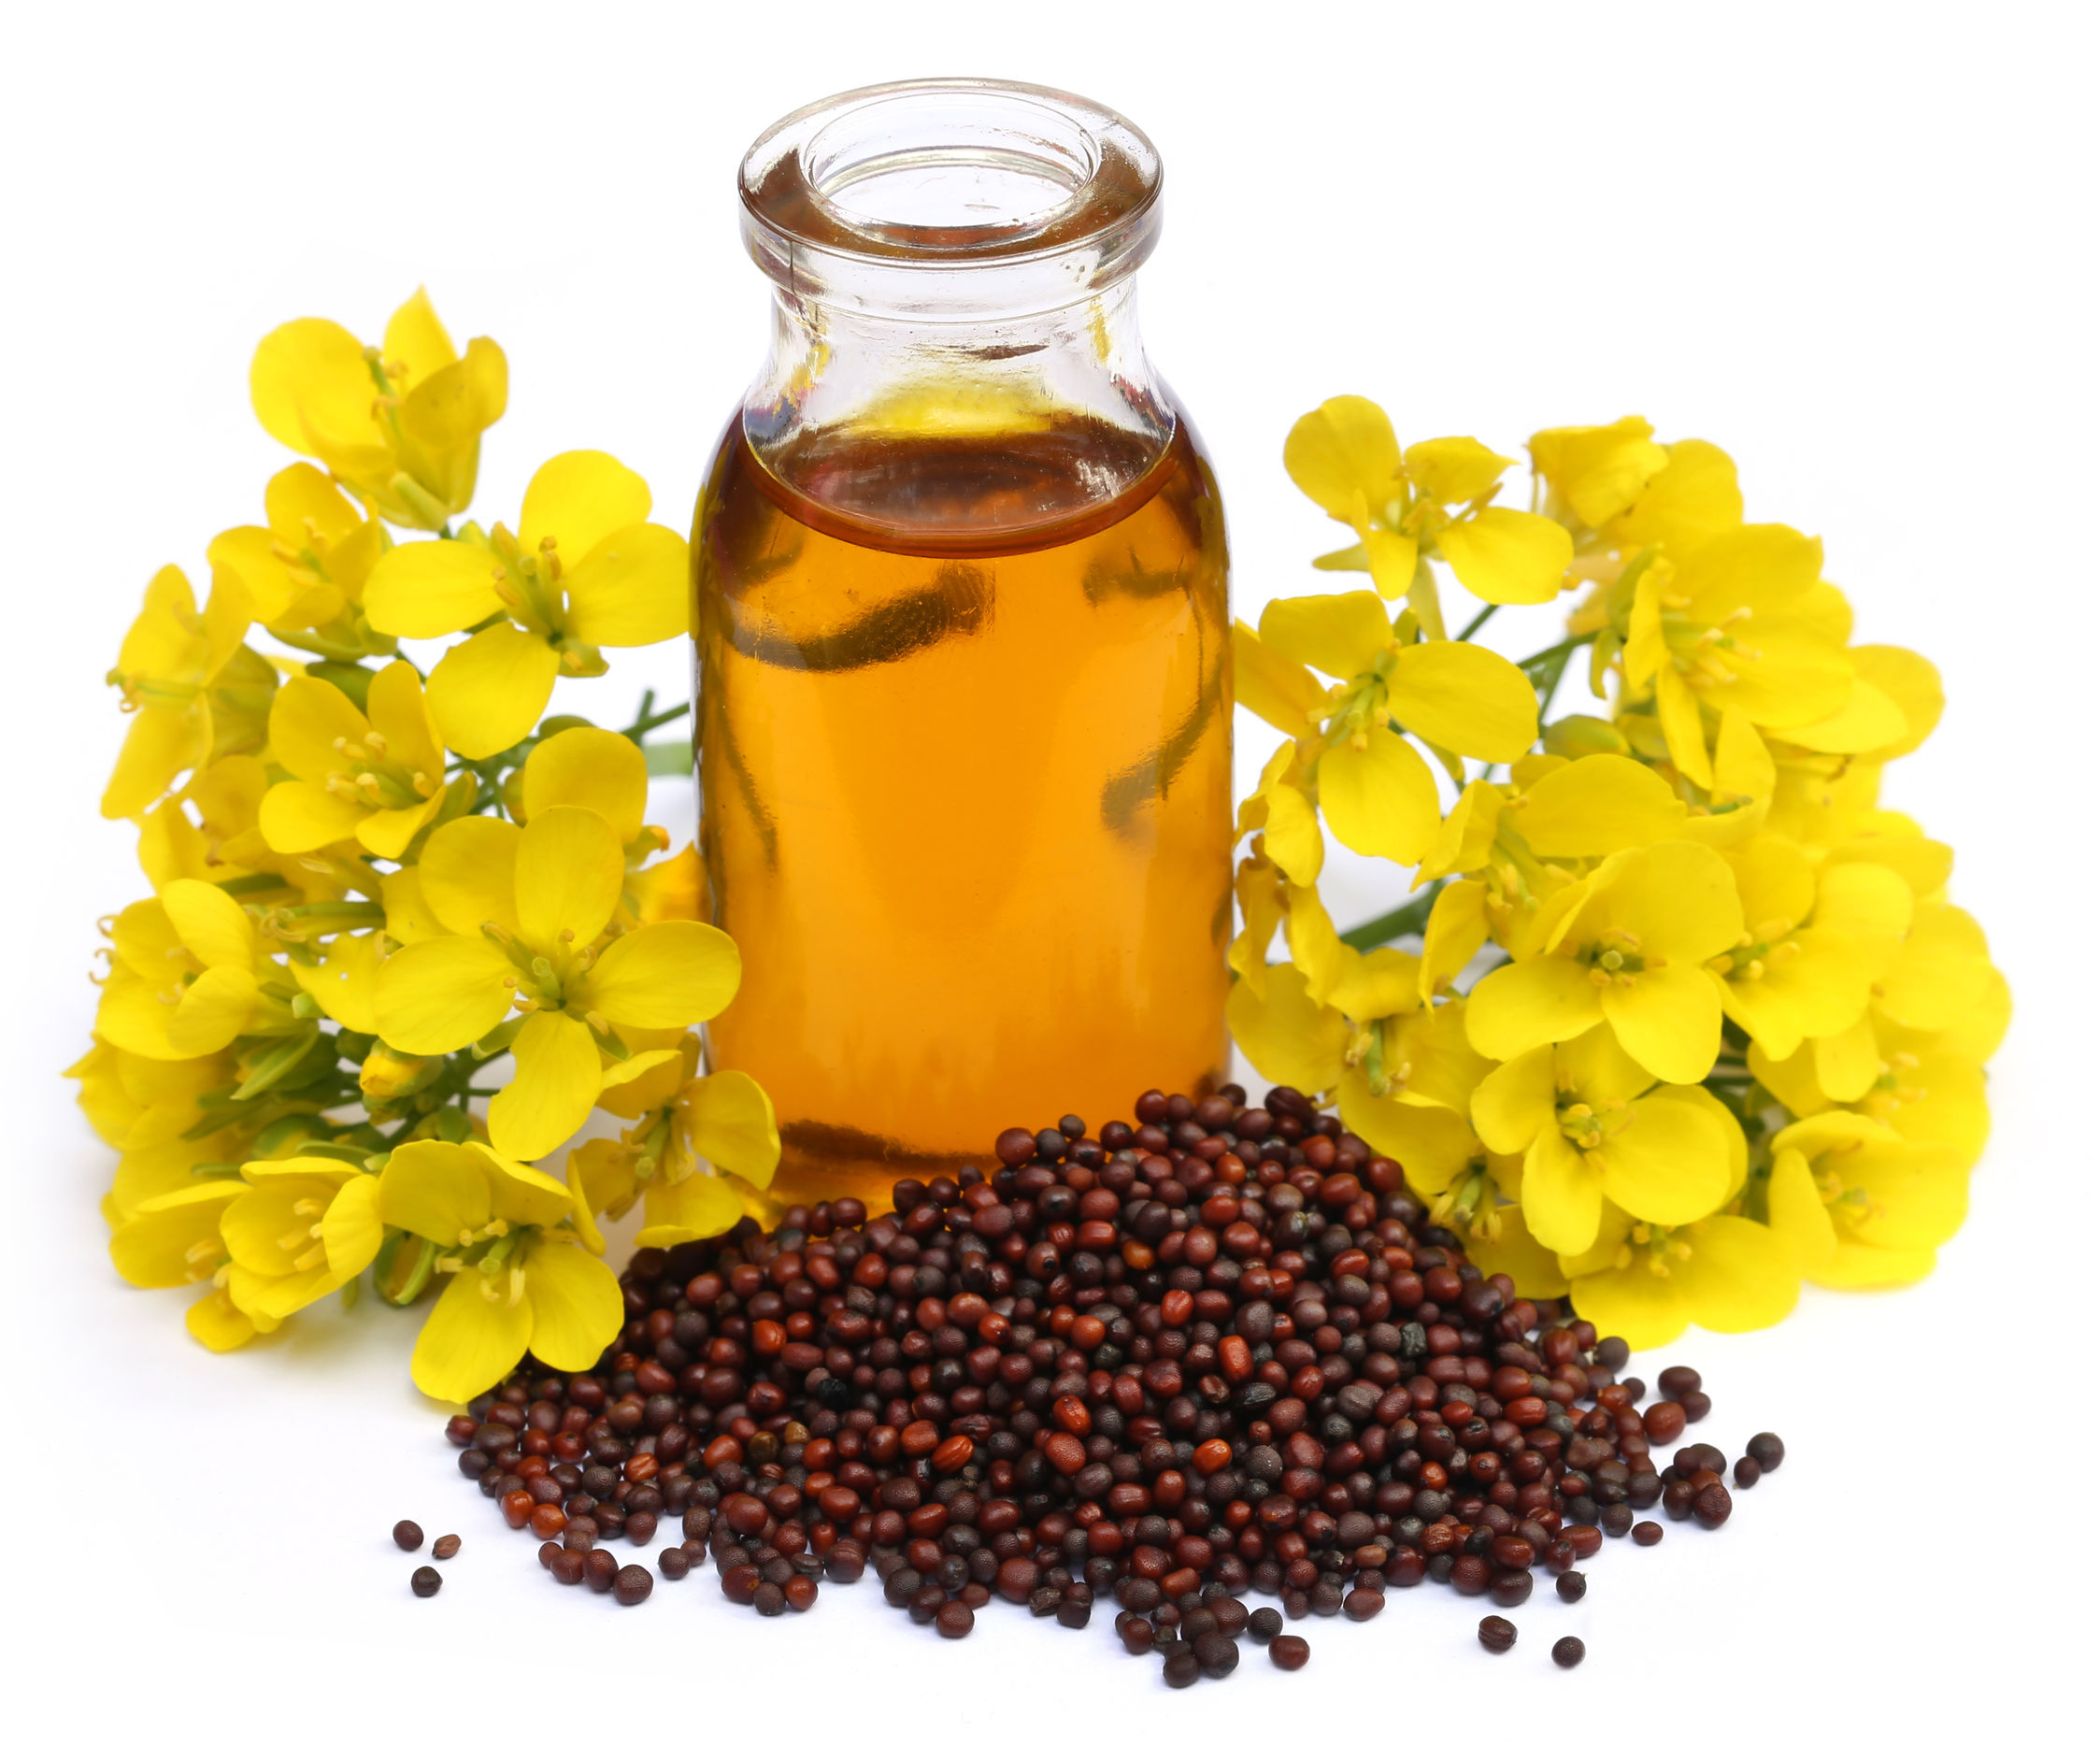 43961071 - mustard oil with flower over white background